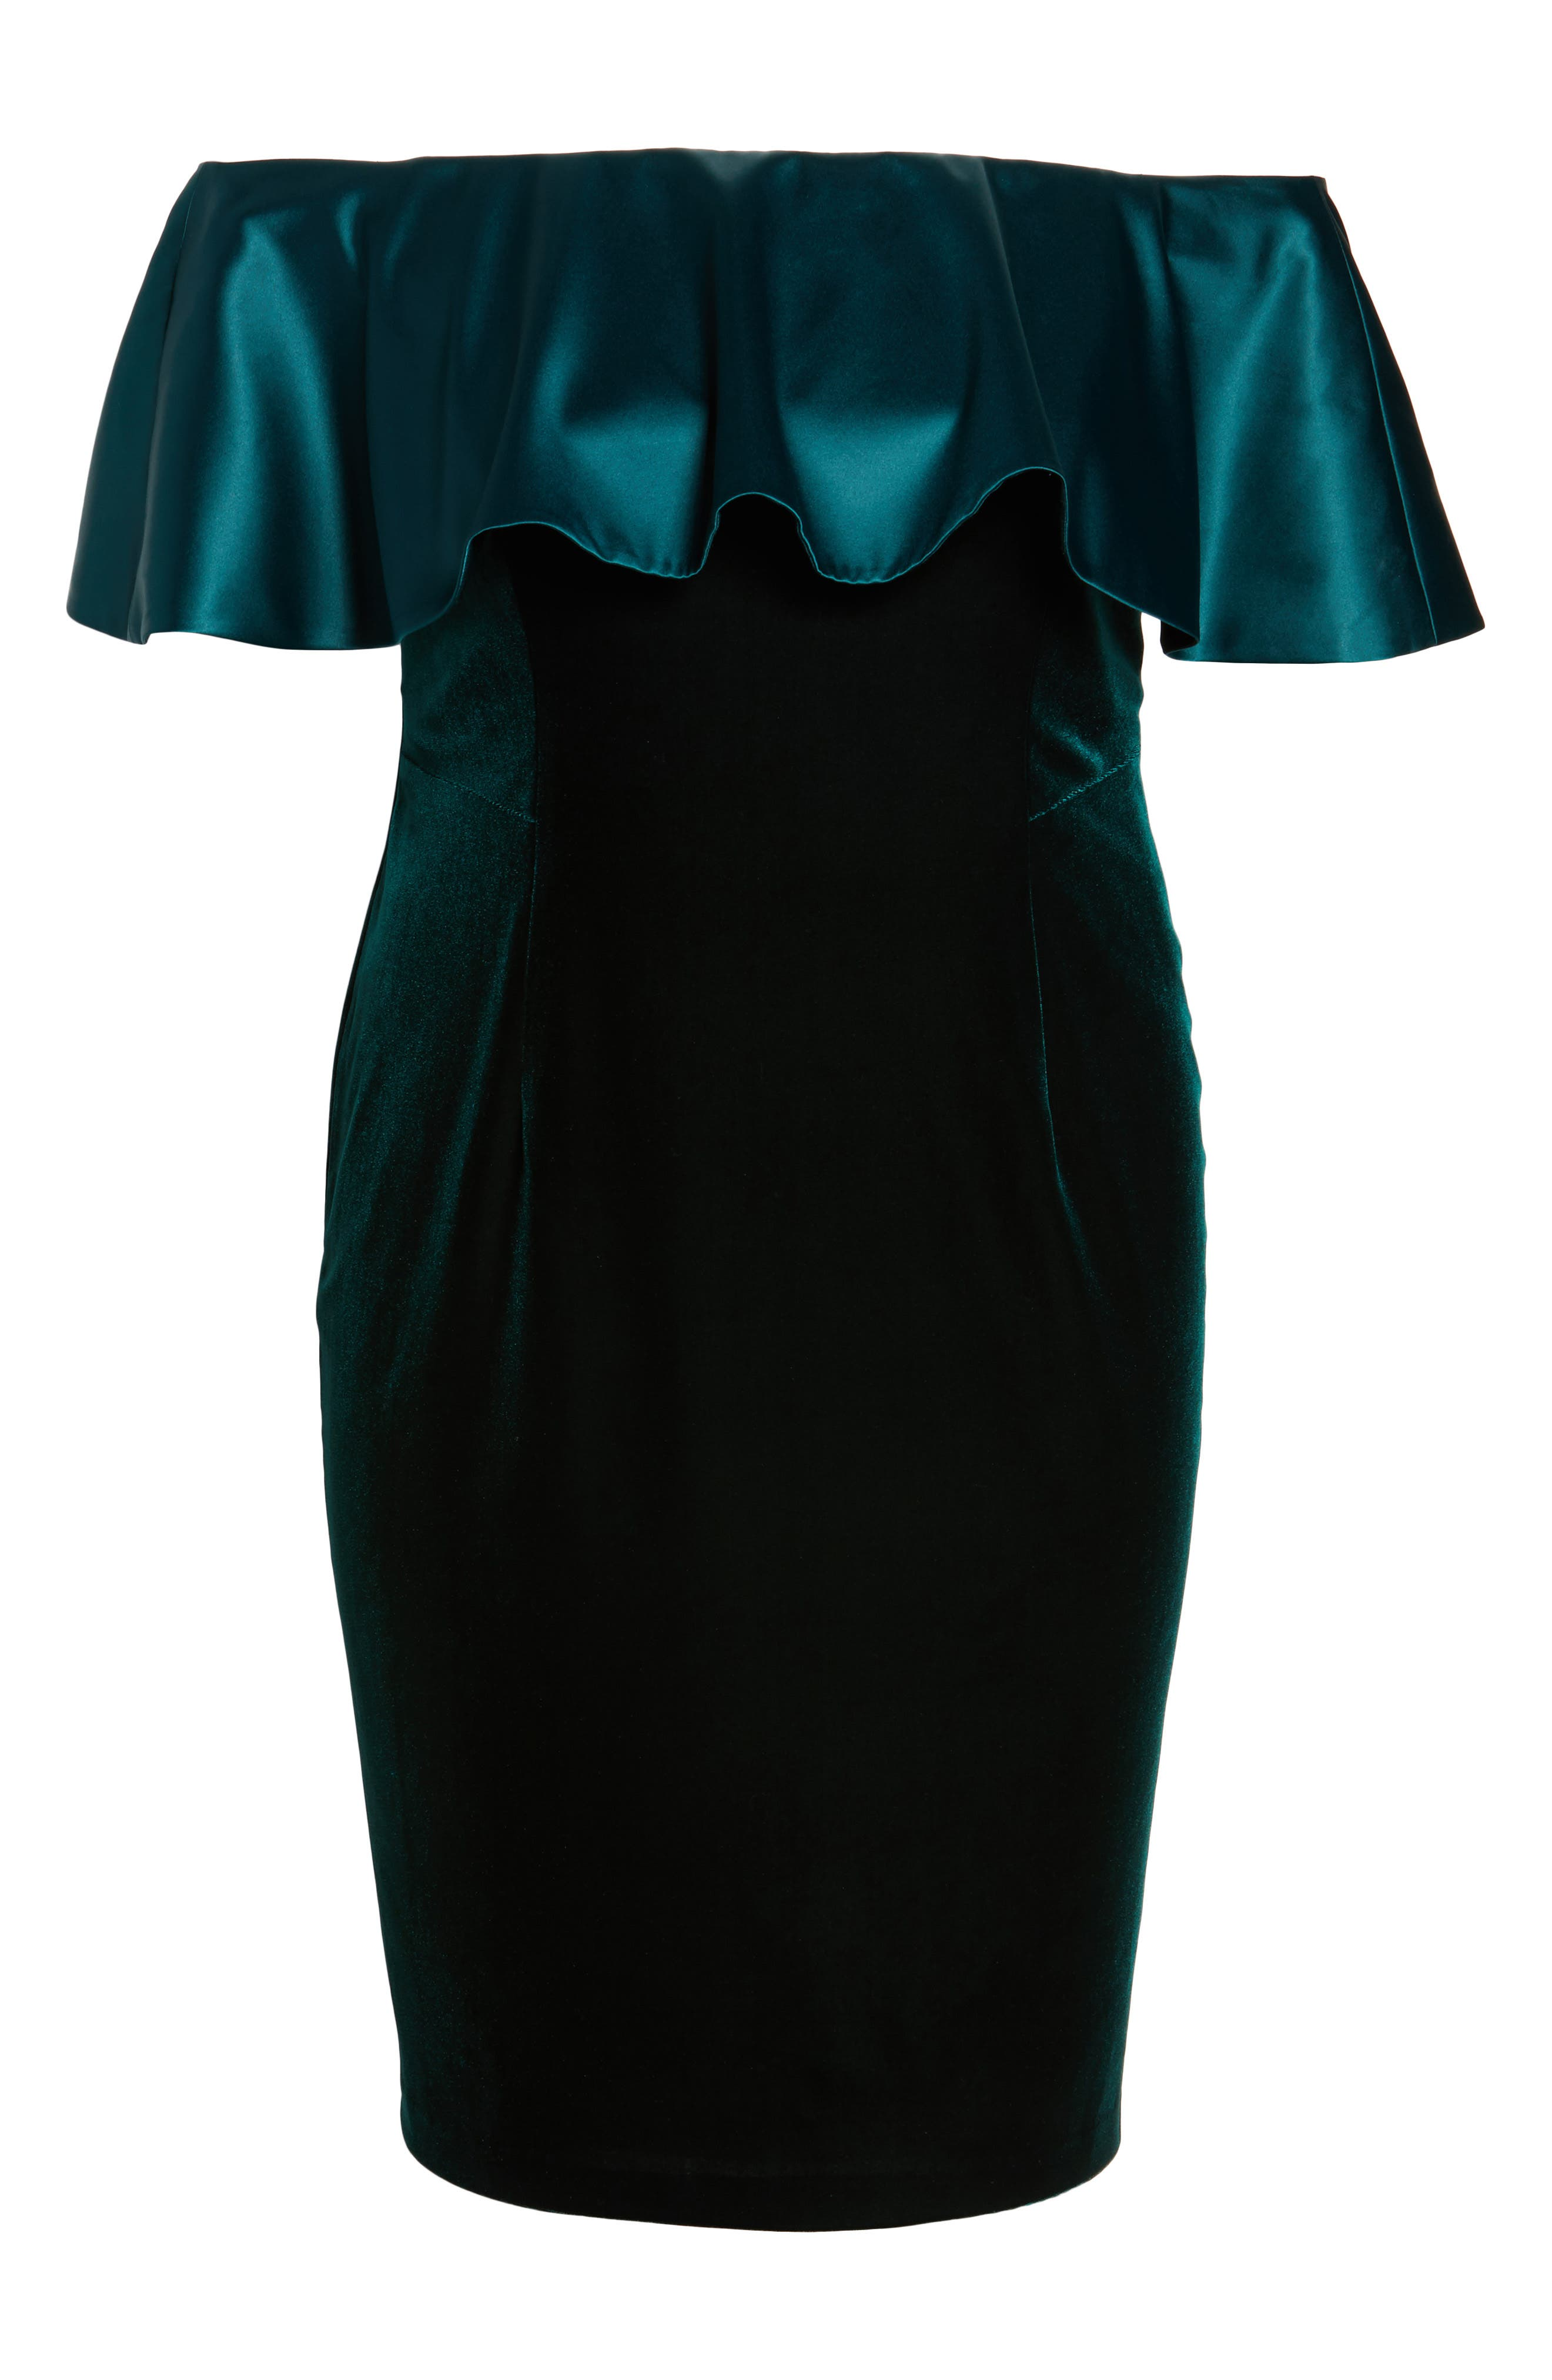 Adriana Papell Stretch Velvet Sheath Dress,                             Alternate thumbnail 7, color,                             Emerald